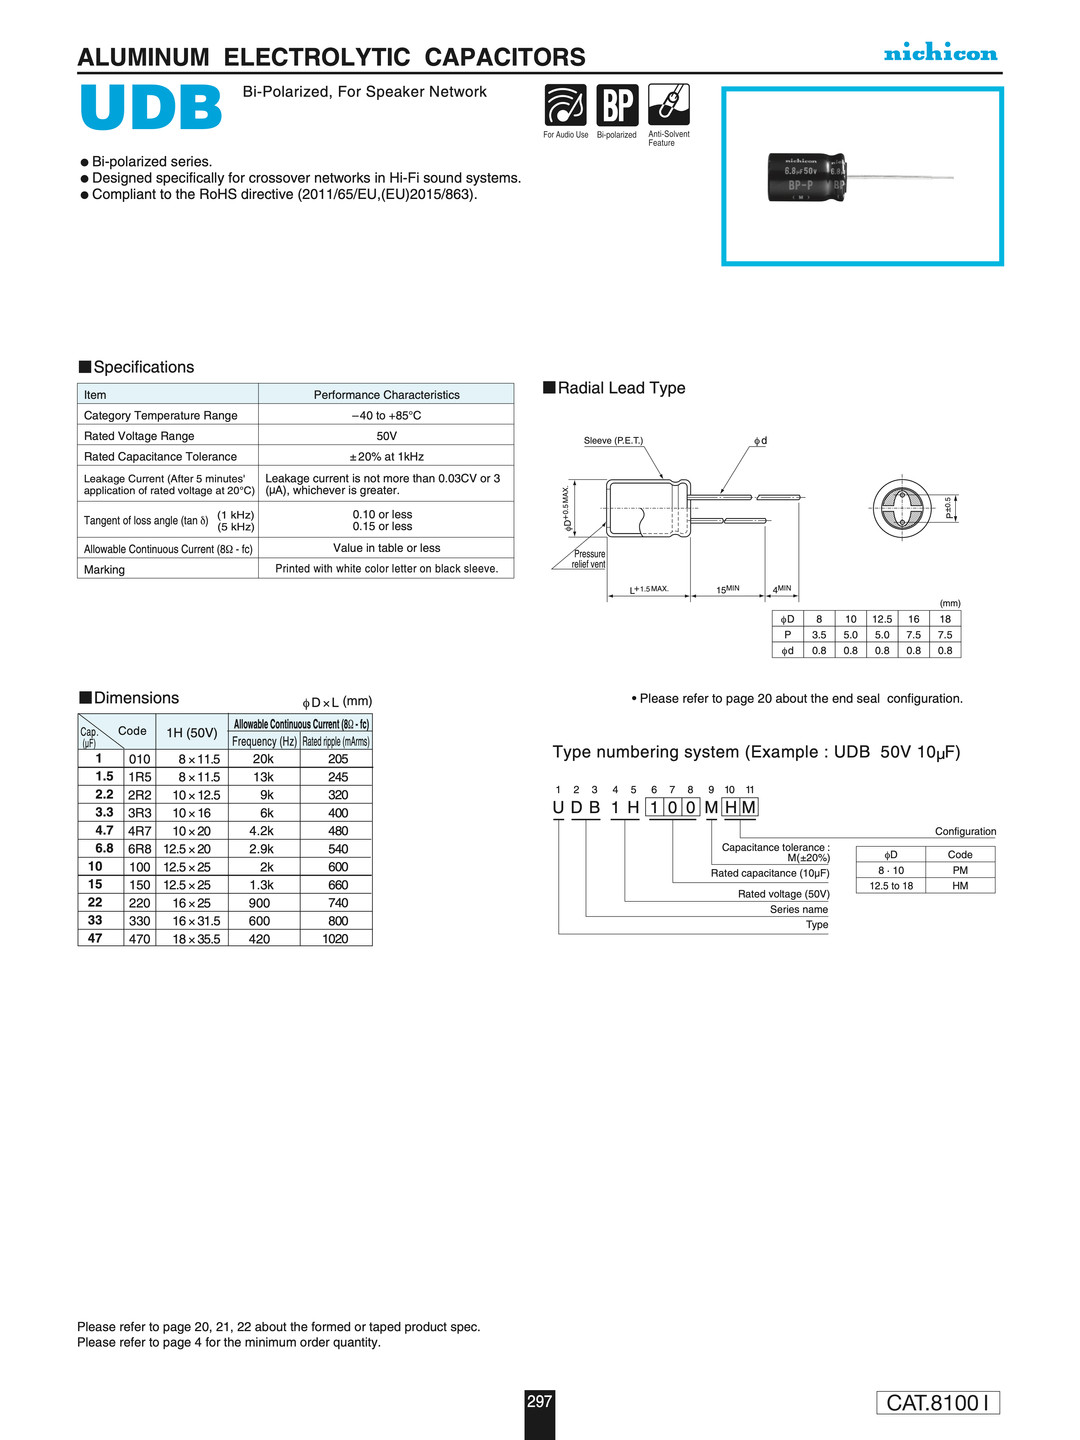 Nichicon UDB Series Capacitor Data Sheet